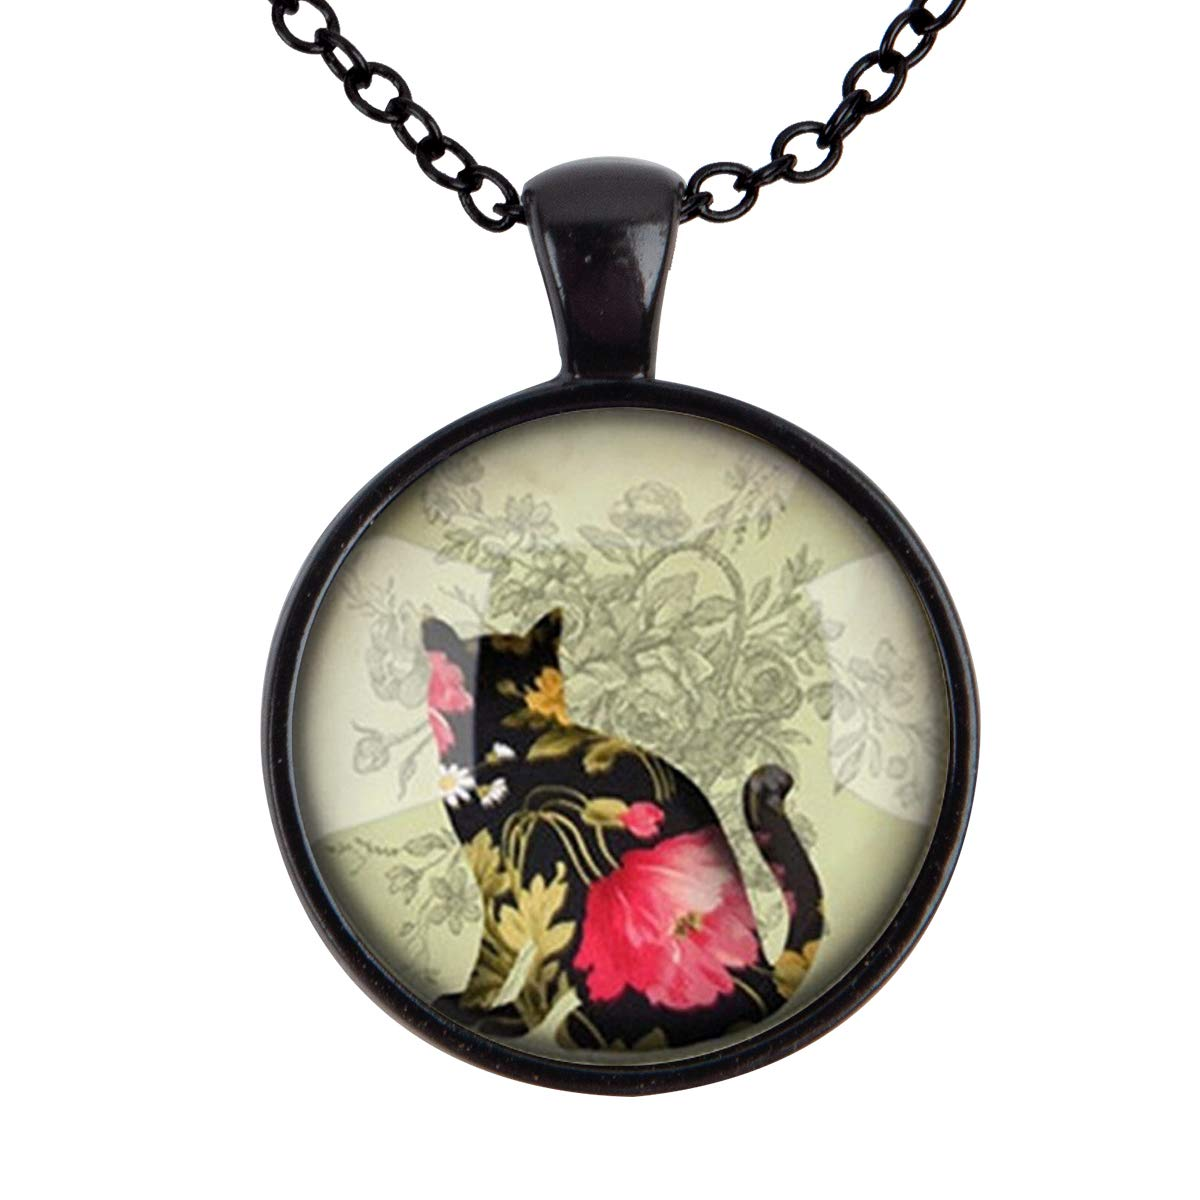 Family Decor Flower Back Cat Pendant Necklace Cabochon Glass Vintage Bronze Chain Necklace Jewelry Handmade